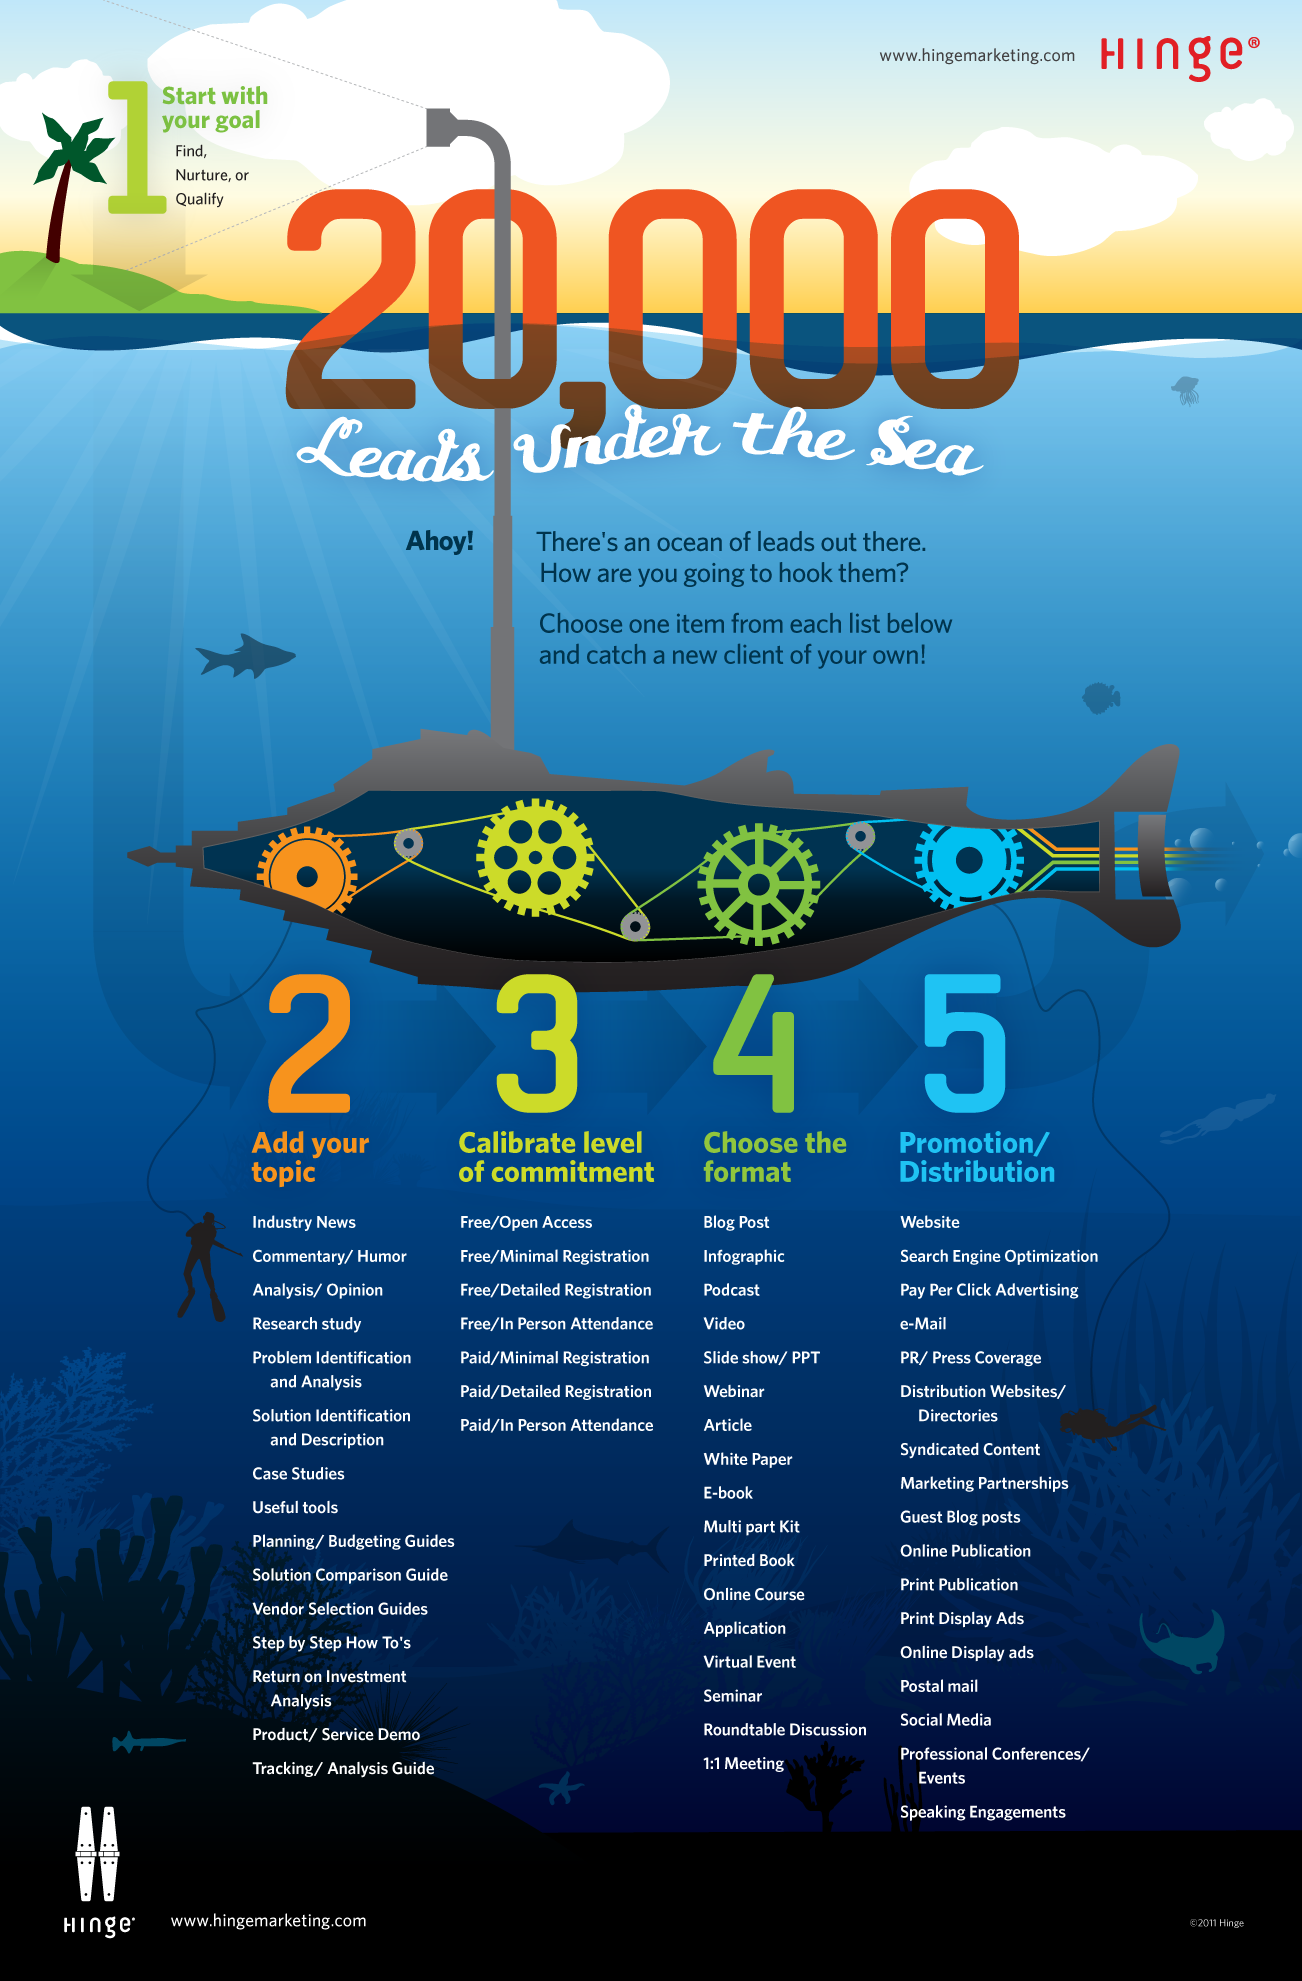 20 000 leads under the sea: new lead generation ideas and combinations to jump start those creative juices 다모아카지노다모아카지노다모아카지노다모아카지노다모아카지노다모아카지노다모아카지노다모아카지노다모아카지노다모아카지노다모아카지노다모아카지노다모아카지노다모아카지노다모아카지노다모아카지노 다모아카지노다모아카지노다모아카지노다모아카지노 다모아카지노다모아카지노다모아카지노다모아카지노다모아카지노다모아카지노다모아카지노다모아카지노다모아카지노다모아카지노다모아카지노#leadgeneration